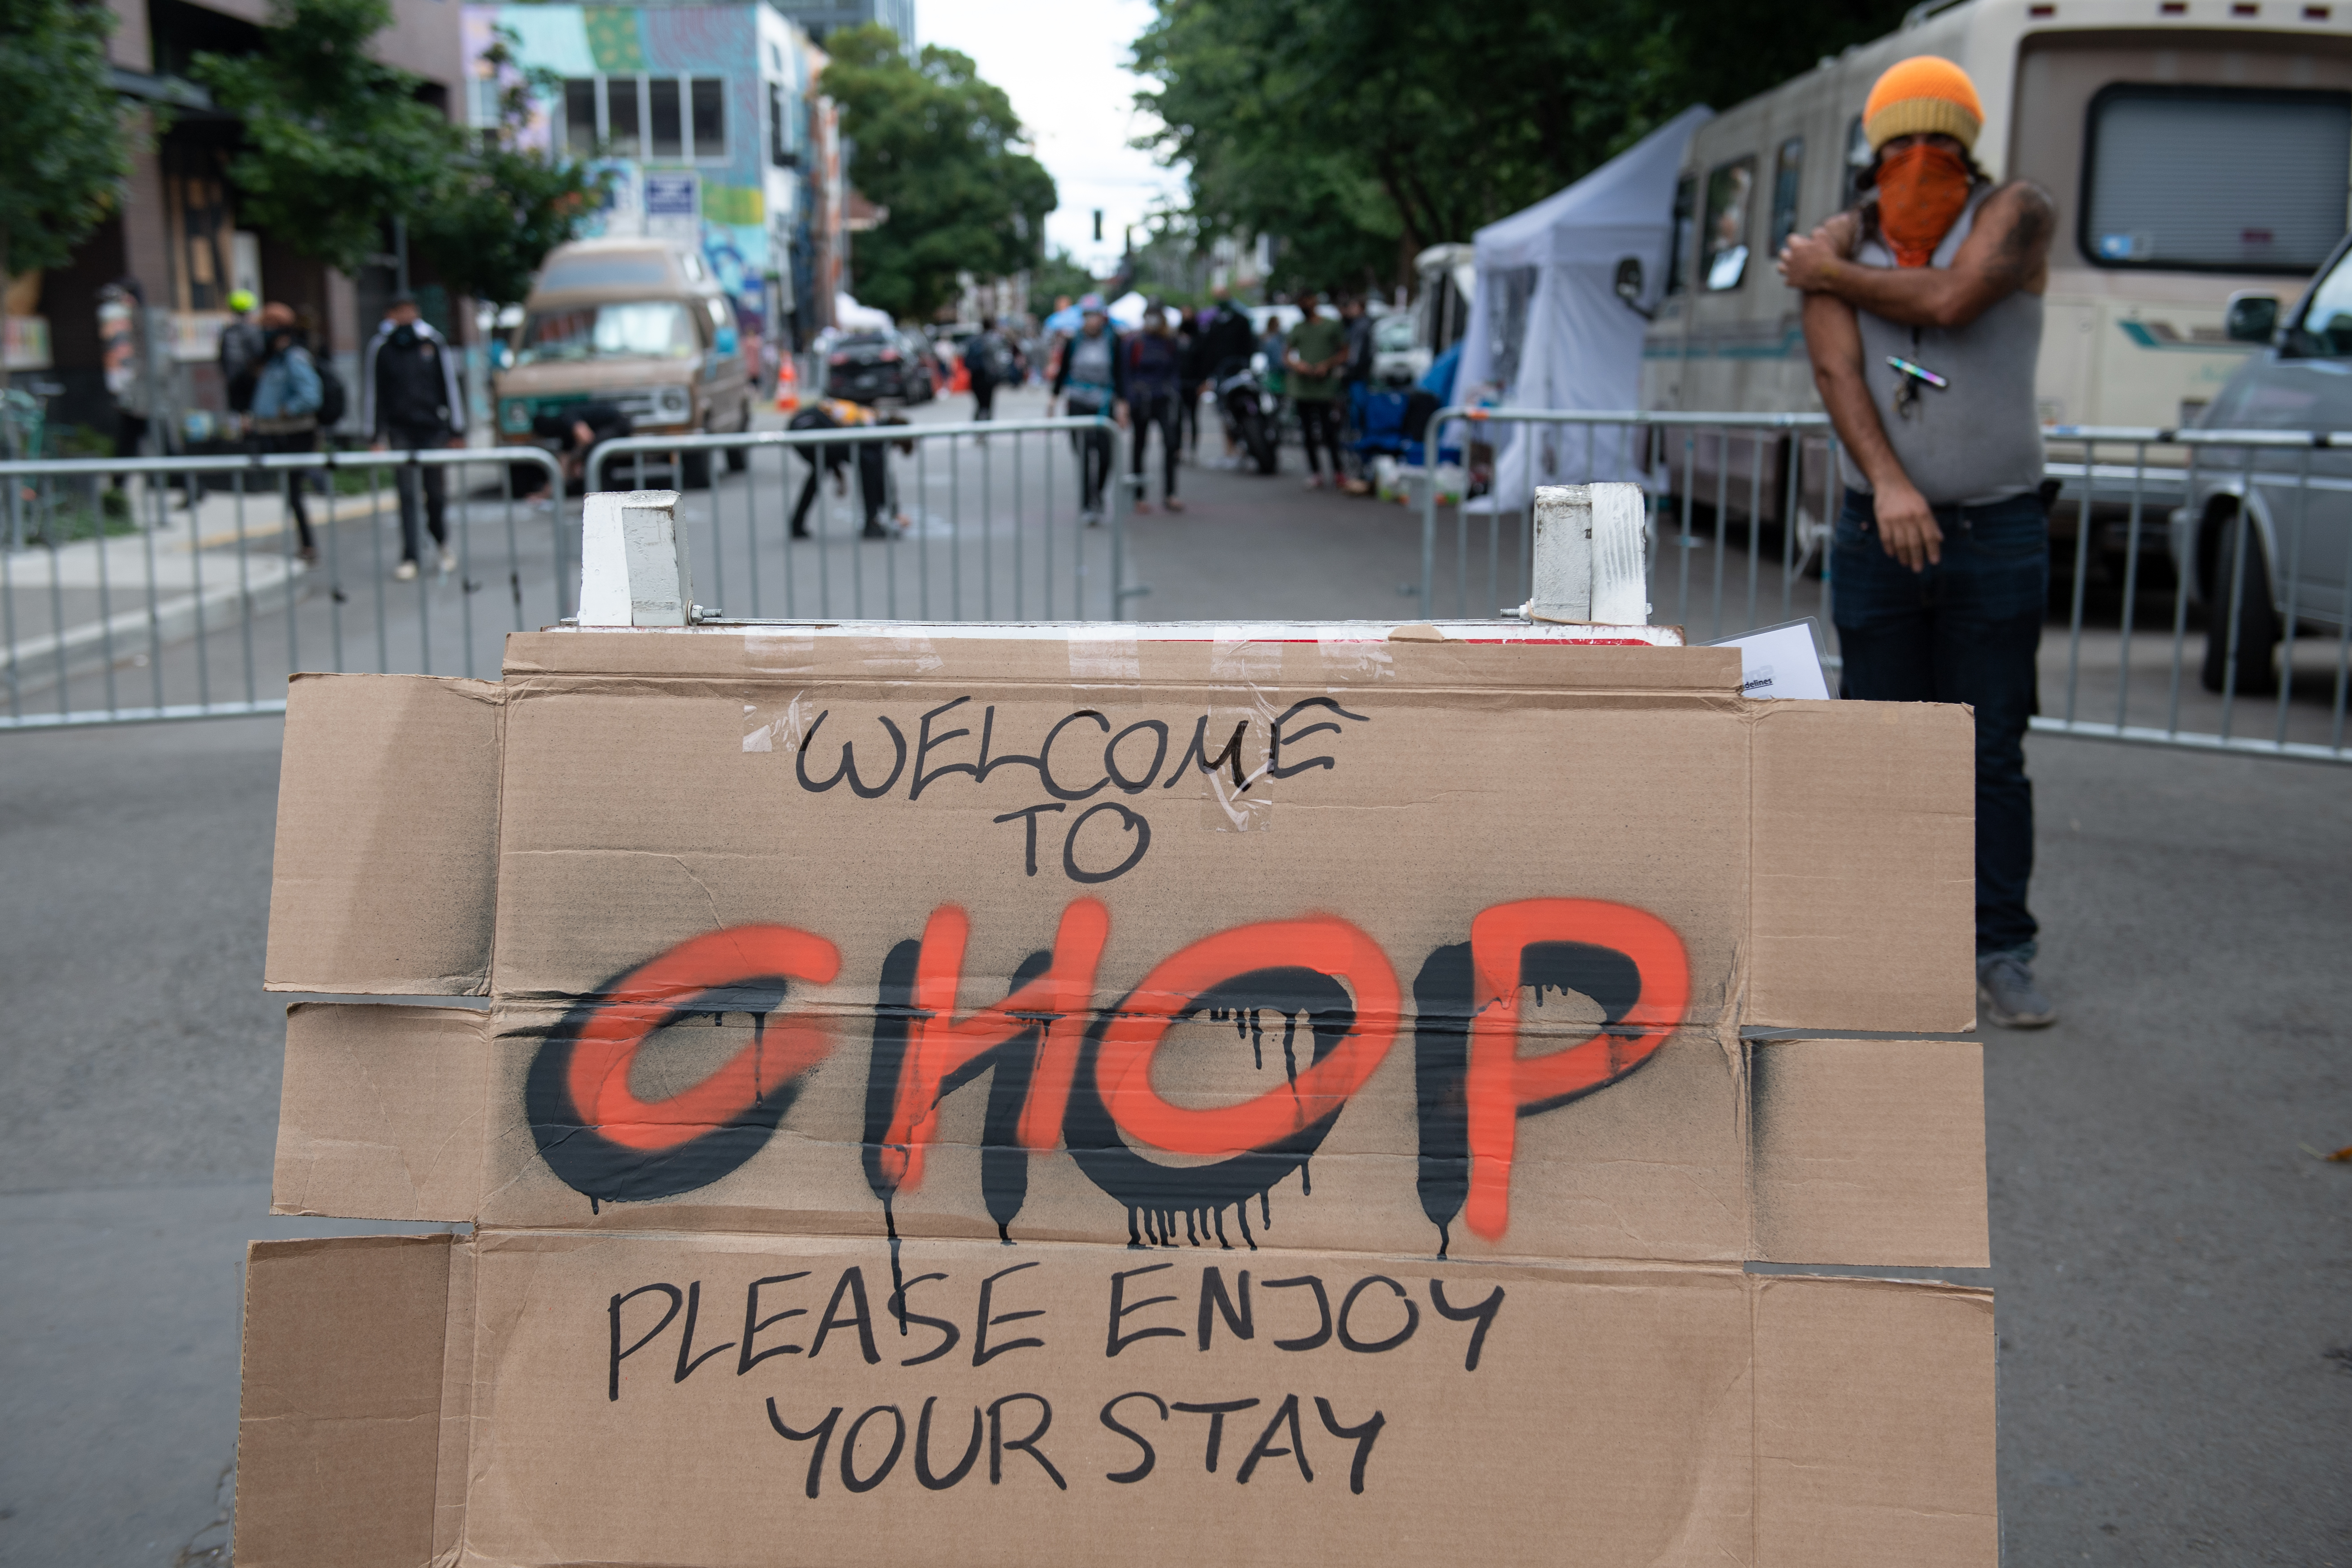 """Cardboard with the word """"CHOP"""" written on it. The cardboard is in the street of the Seattle Autonomous Zone, a police-free area also known as CHOP or CHAZ."""